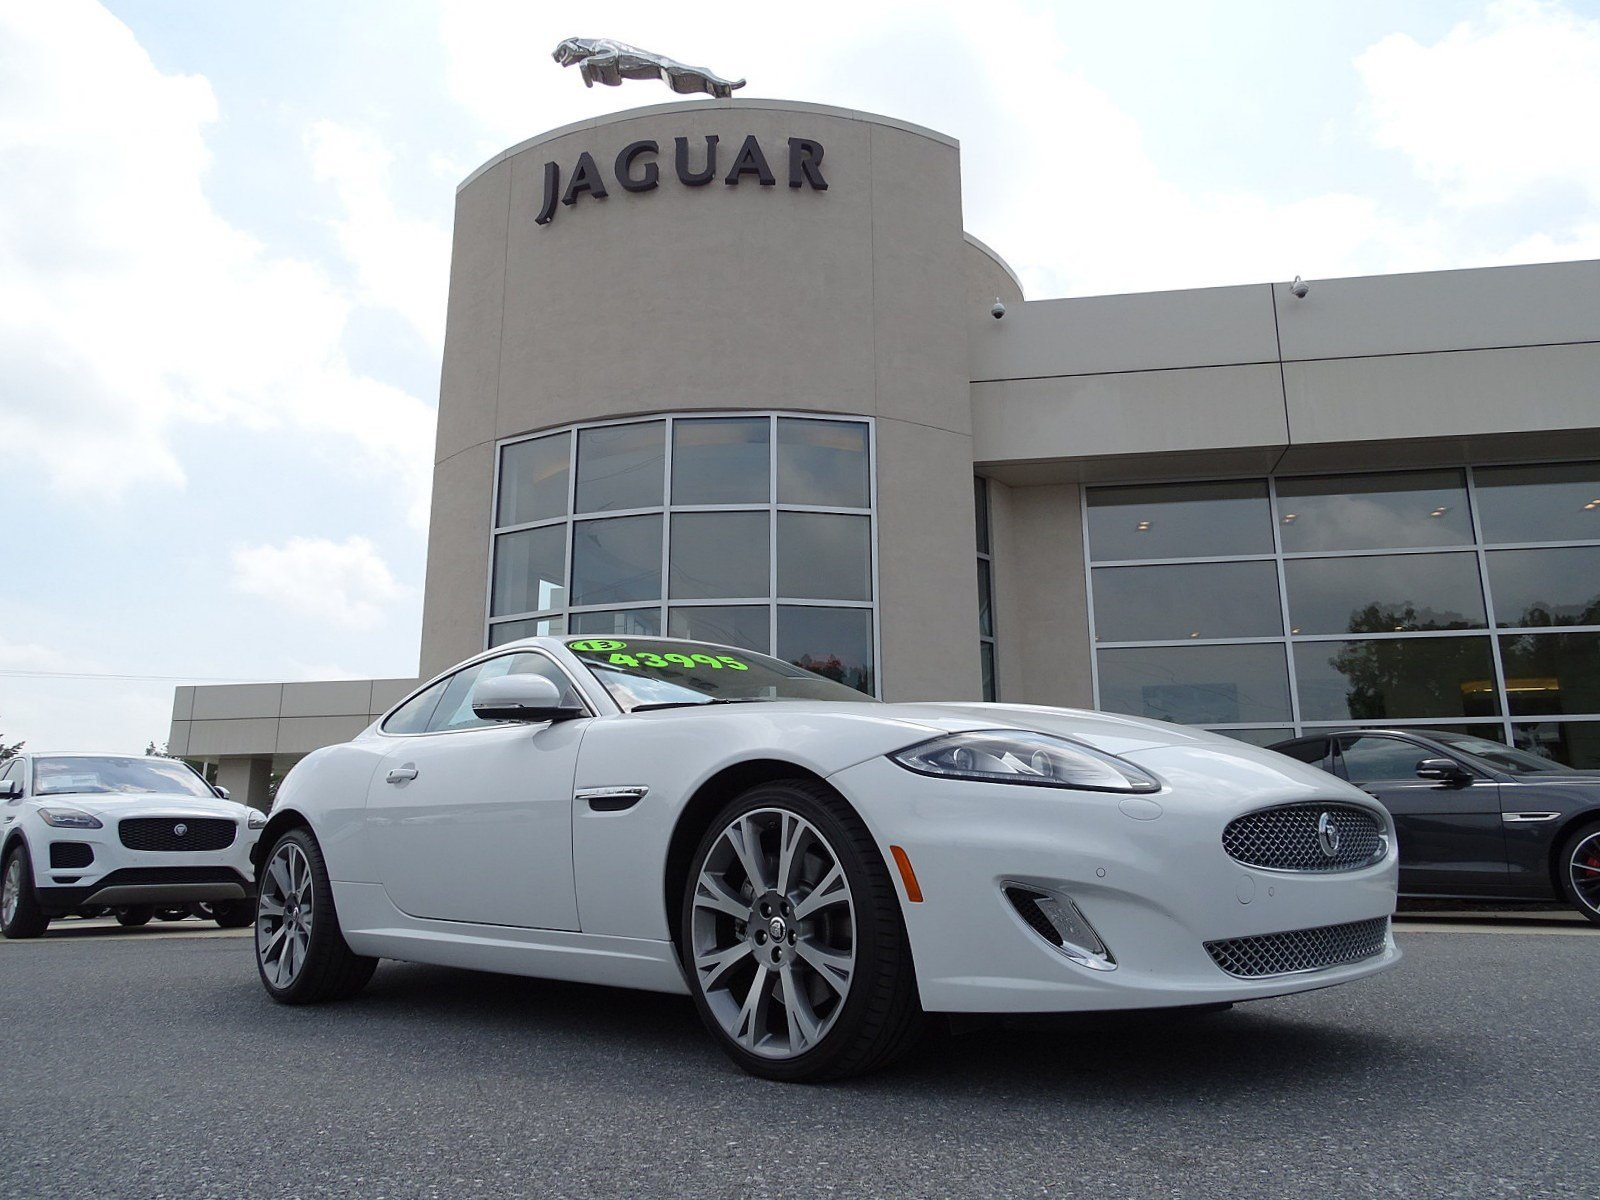 fs sale certified for southwest owned buy xkr private s jaguar classifieds forum trade pre img